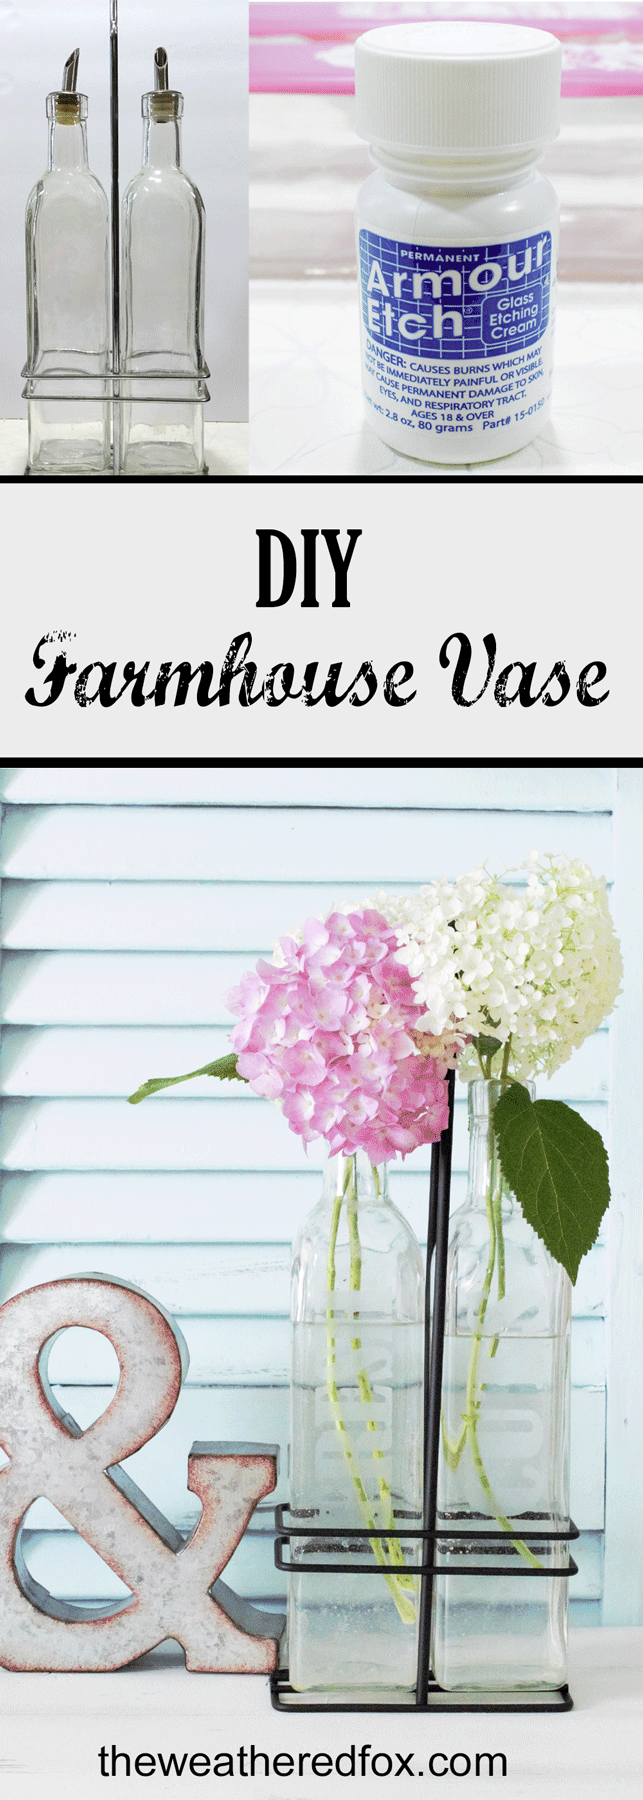 Creating a DIY farmhouse vase is easy using some upcylced bottles and etching cream. I love the clean, farmhouse style and these will blend perfectly! - www.theweatheredfox.net